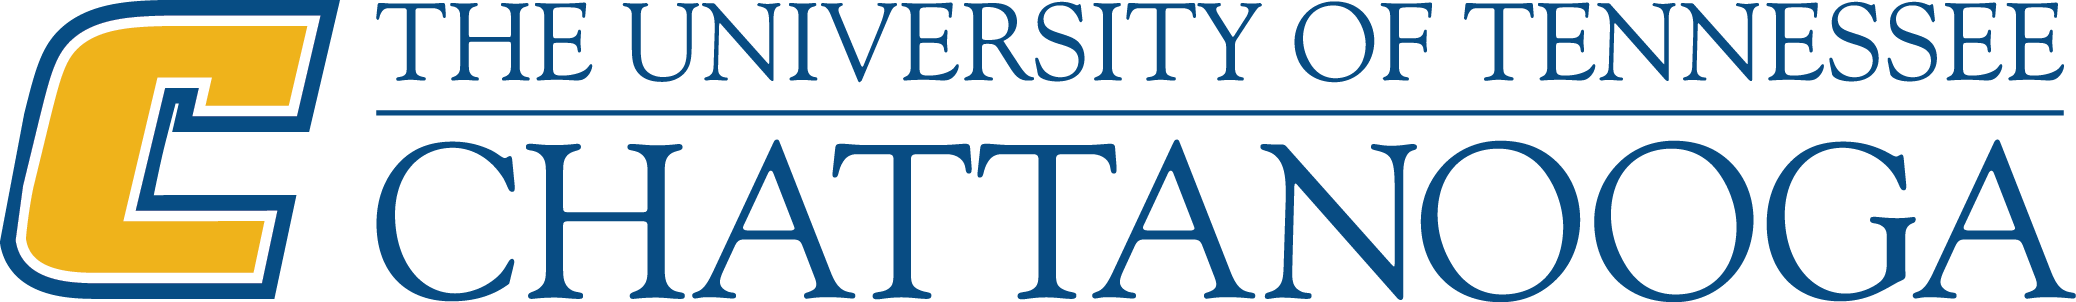 Univeristy of Tennessee Chattanooga